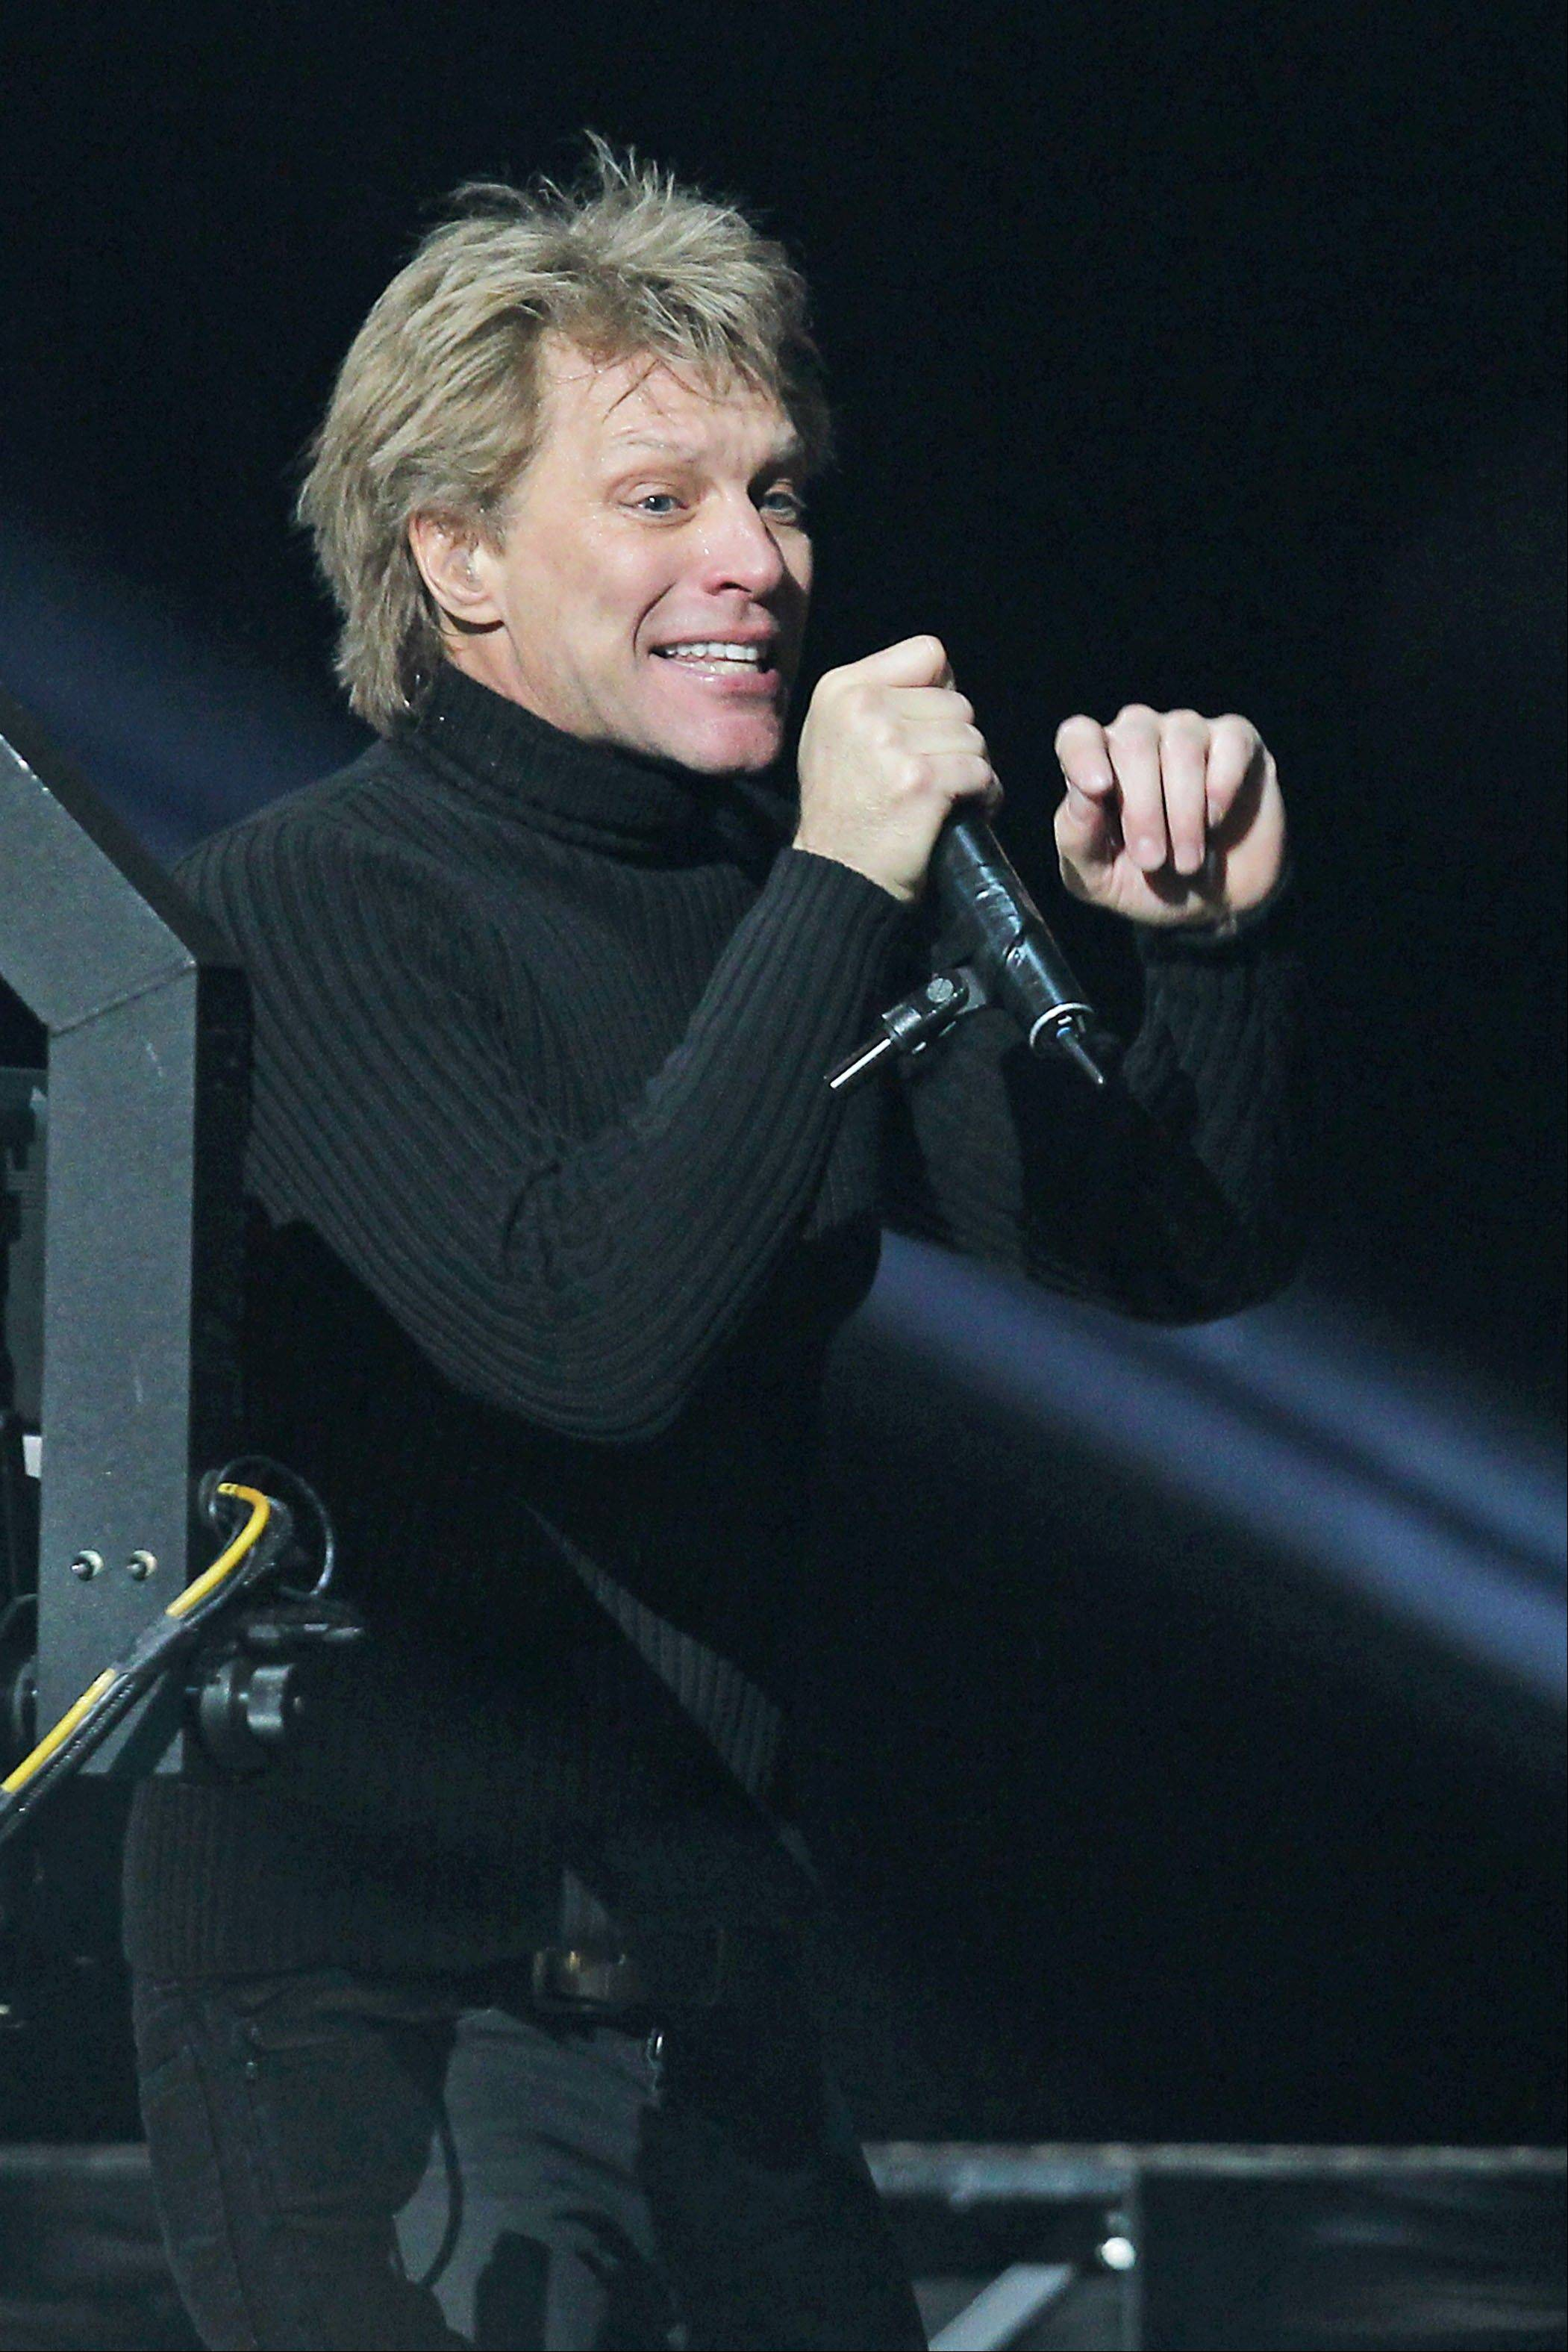 Jon Bon Jovi and his band Bon Jovi play Soldier Field on Friday, July 12.